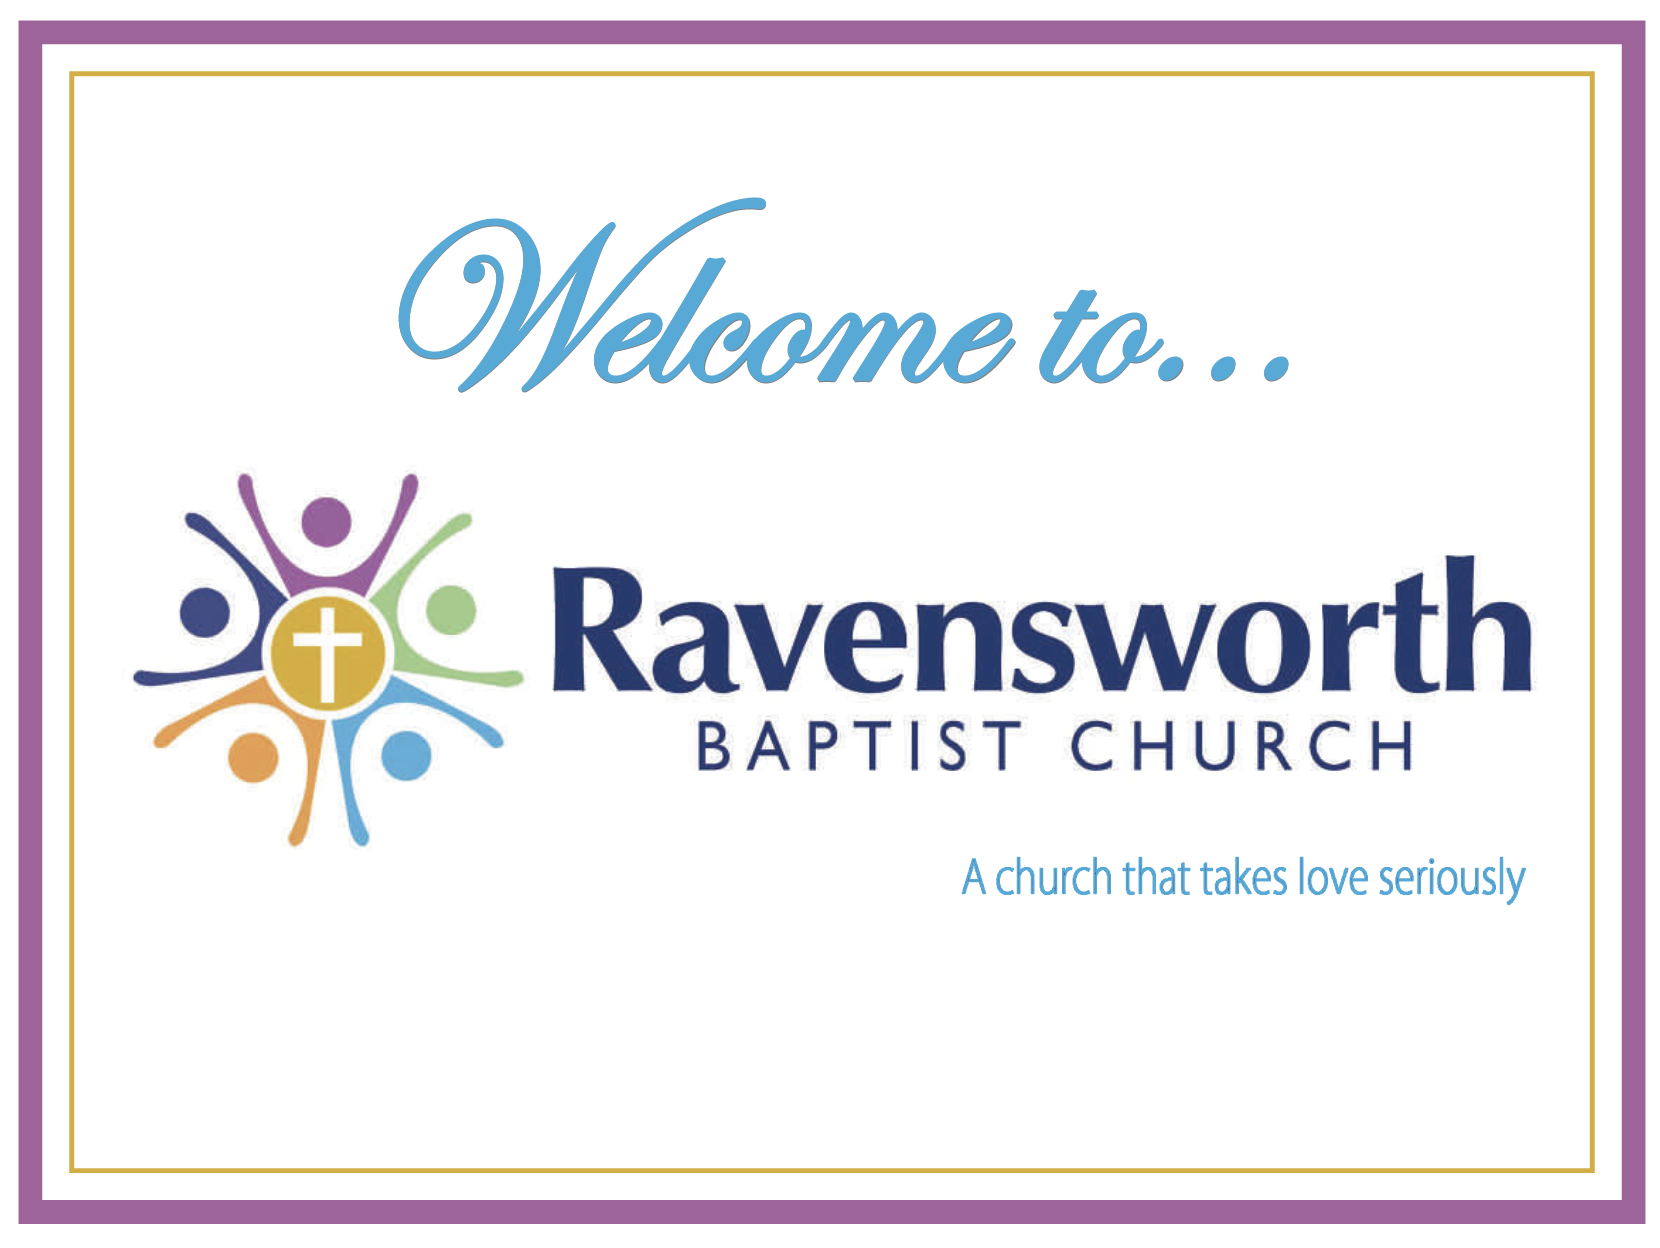 Welcome to Ravensworth Baptist Church